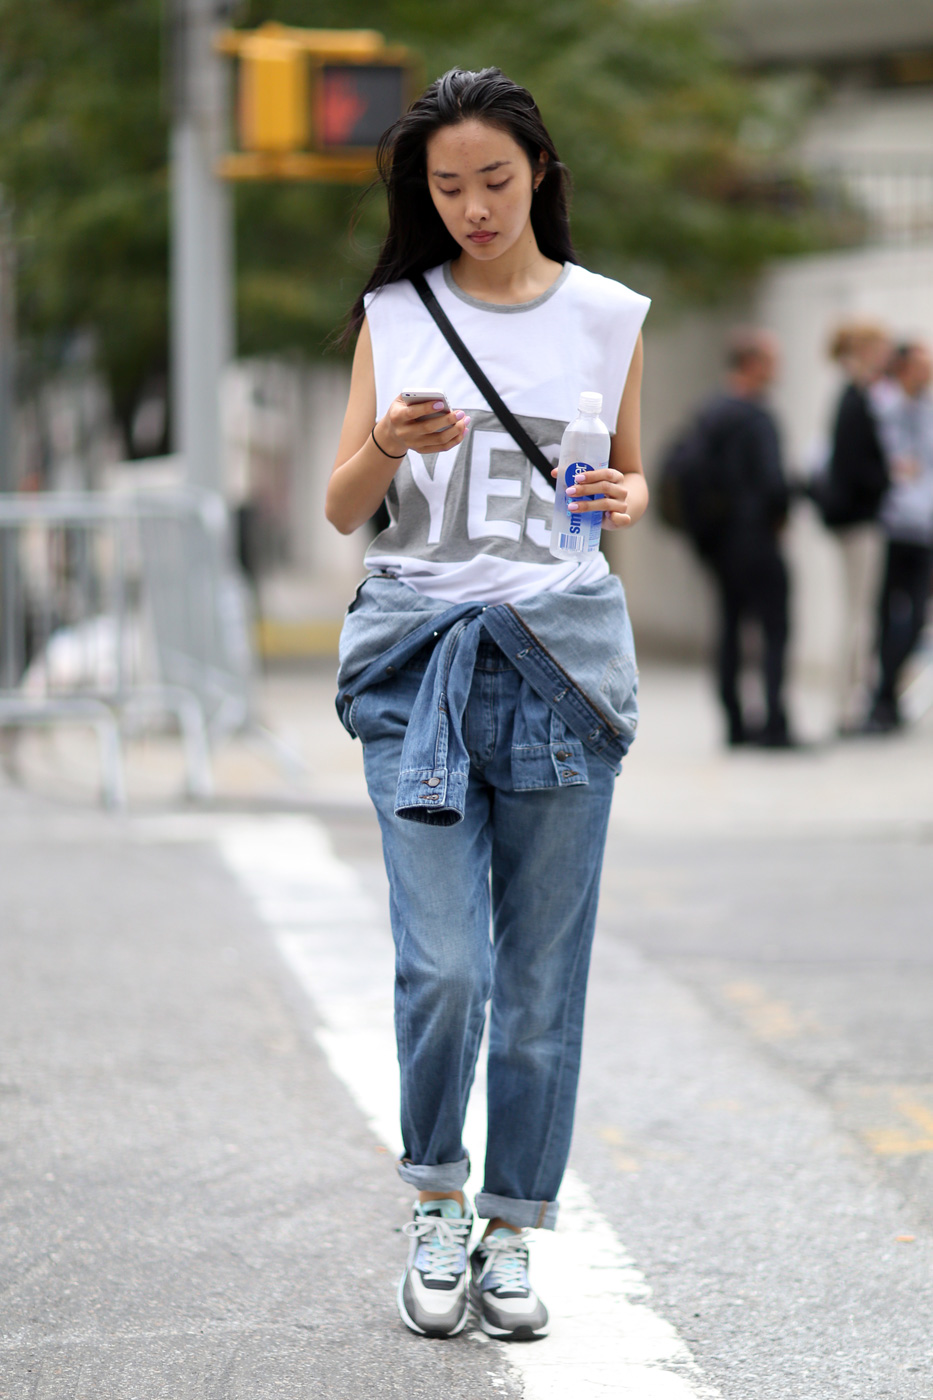 Model in casual outfit.